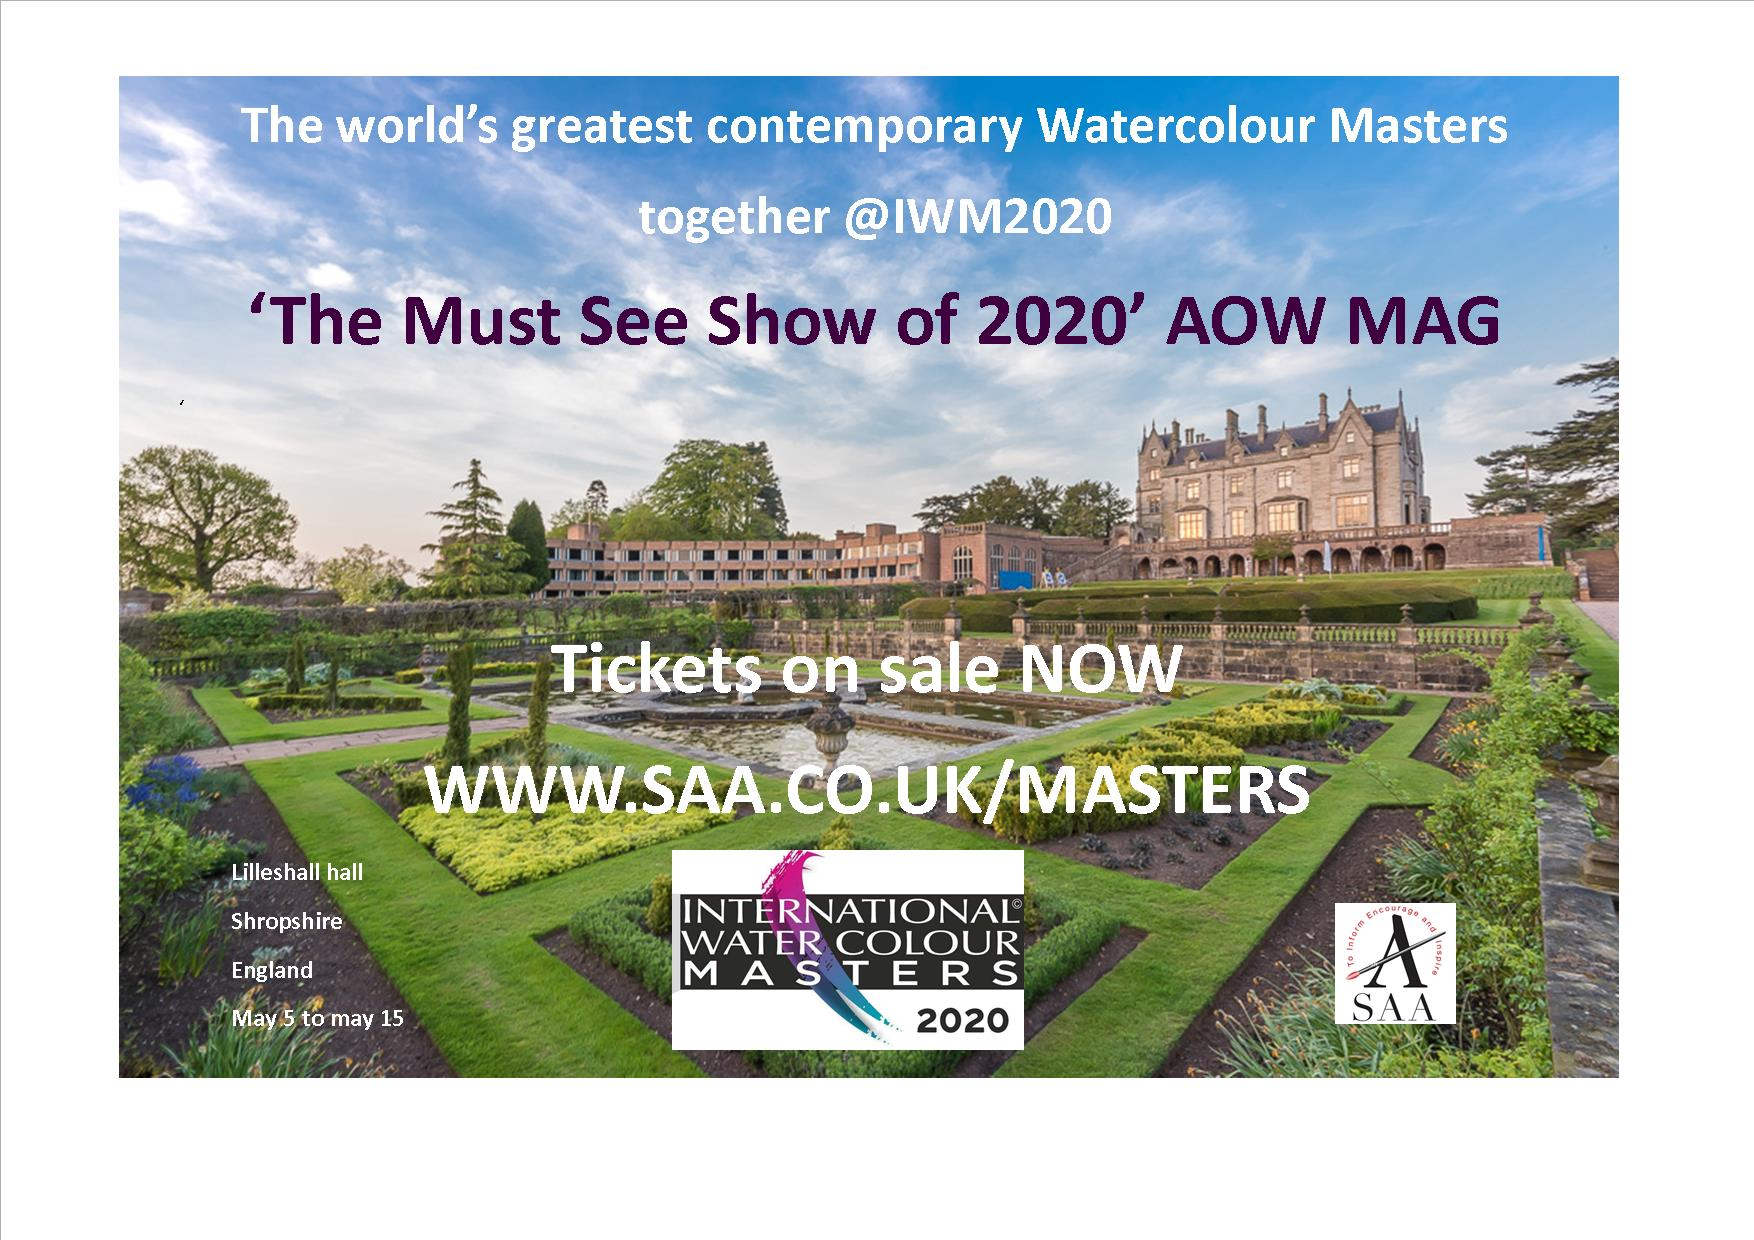 #iwm2020 Internatiuonal Watercolour Masters. Watercolor Masters come to England. The must see art exhibition of 2020.